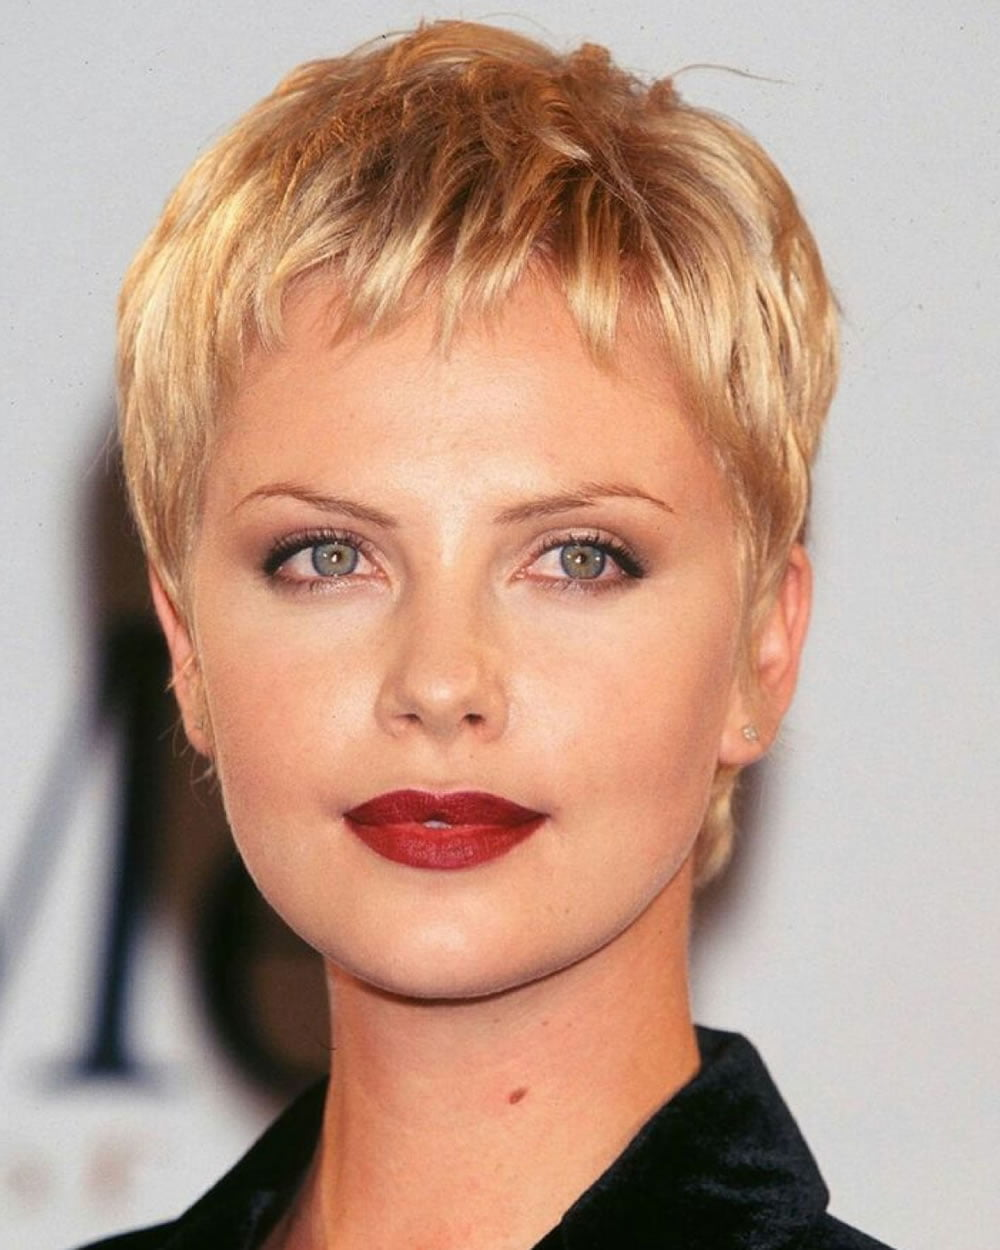 2018 Hairstyles for Short Hair u0026 Easy+Fast Pixie and Bob Hair Cut Ideas u2013 Page 9 u2013 HAIRSTYLES